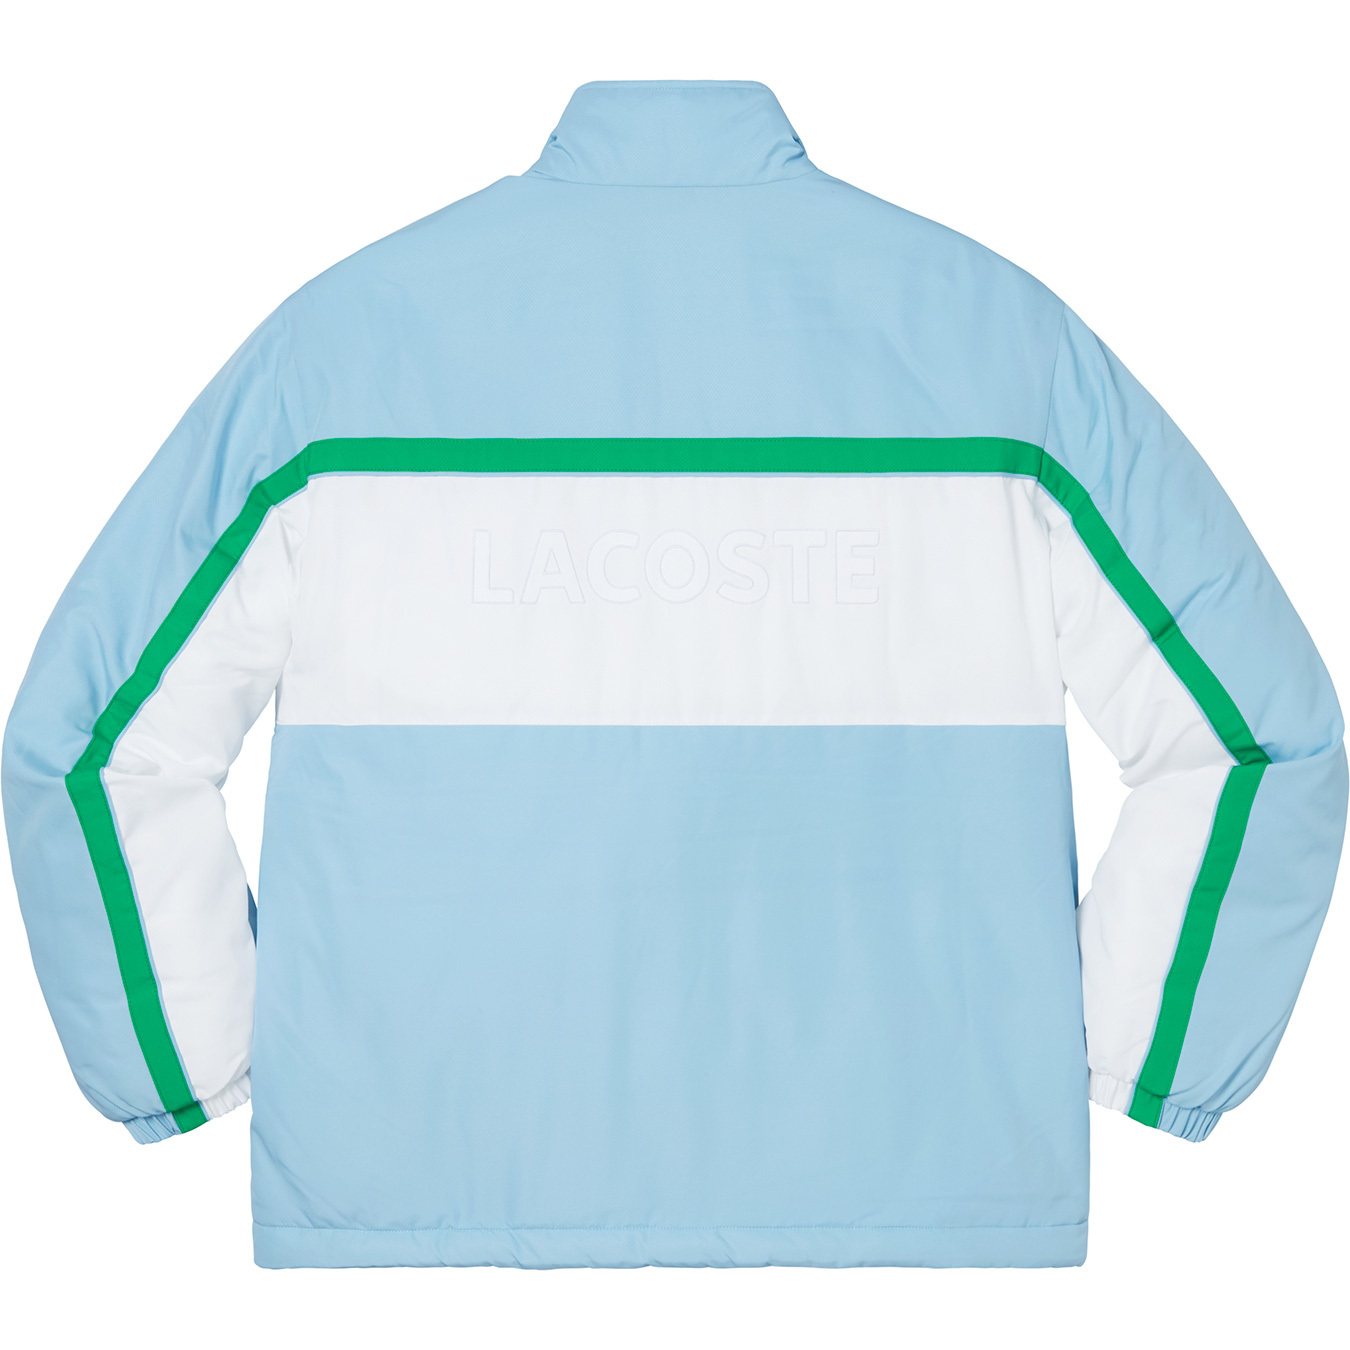 supreme-lacoste-19aw-19fw-collaboration-release-20190928-week5-puffy-half-zip-pullover